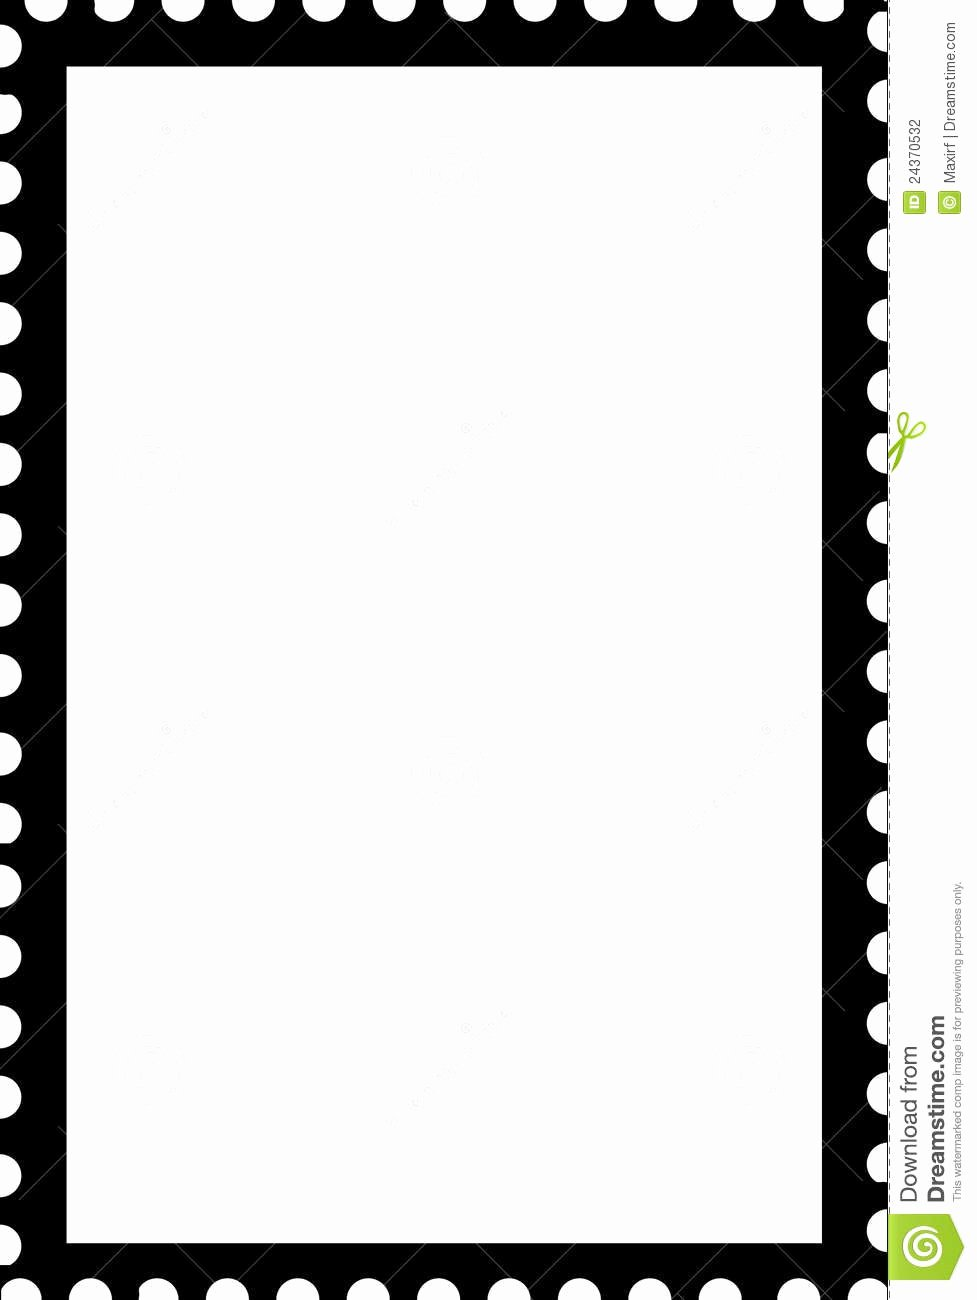 Blank Stamp Template Fresh Blank Open Stamp Portrait Template Black White Stock